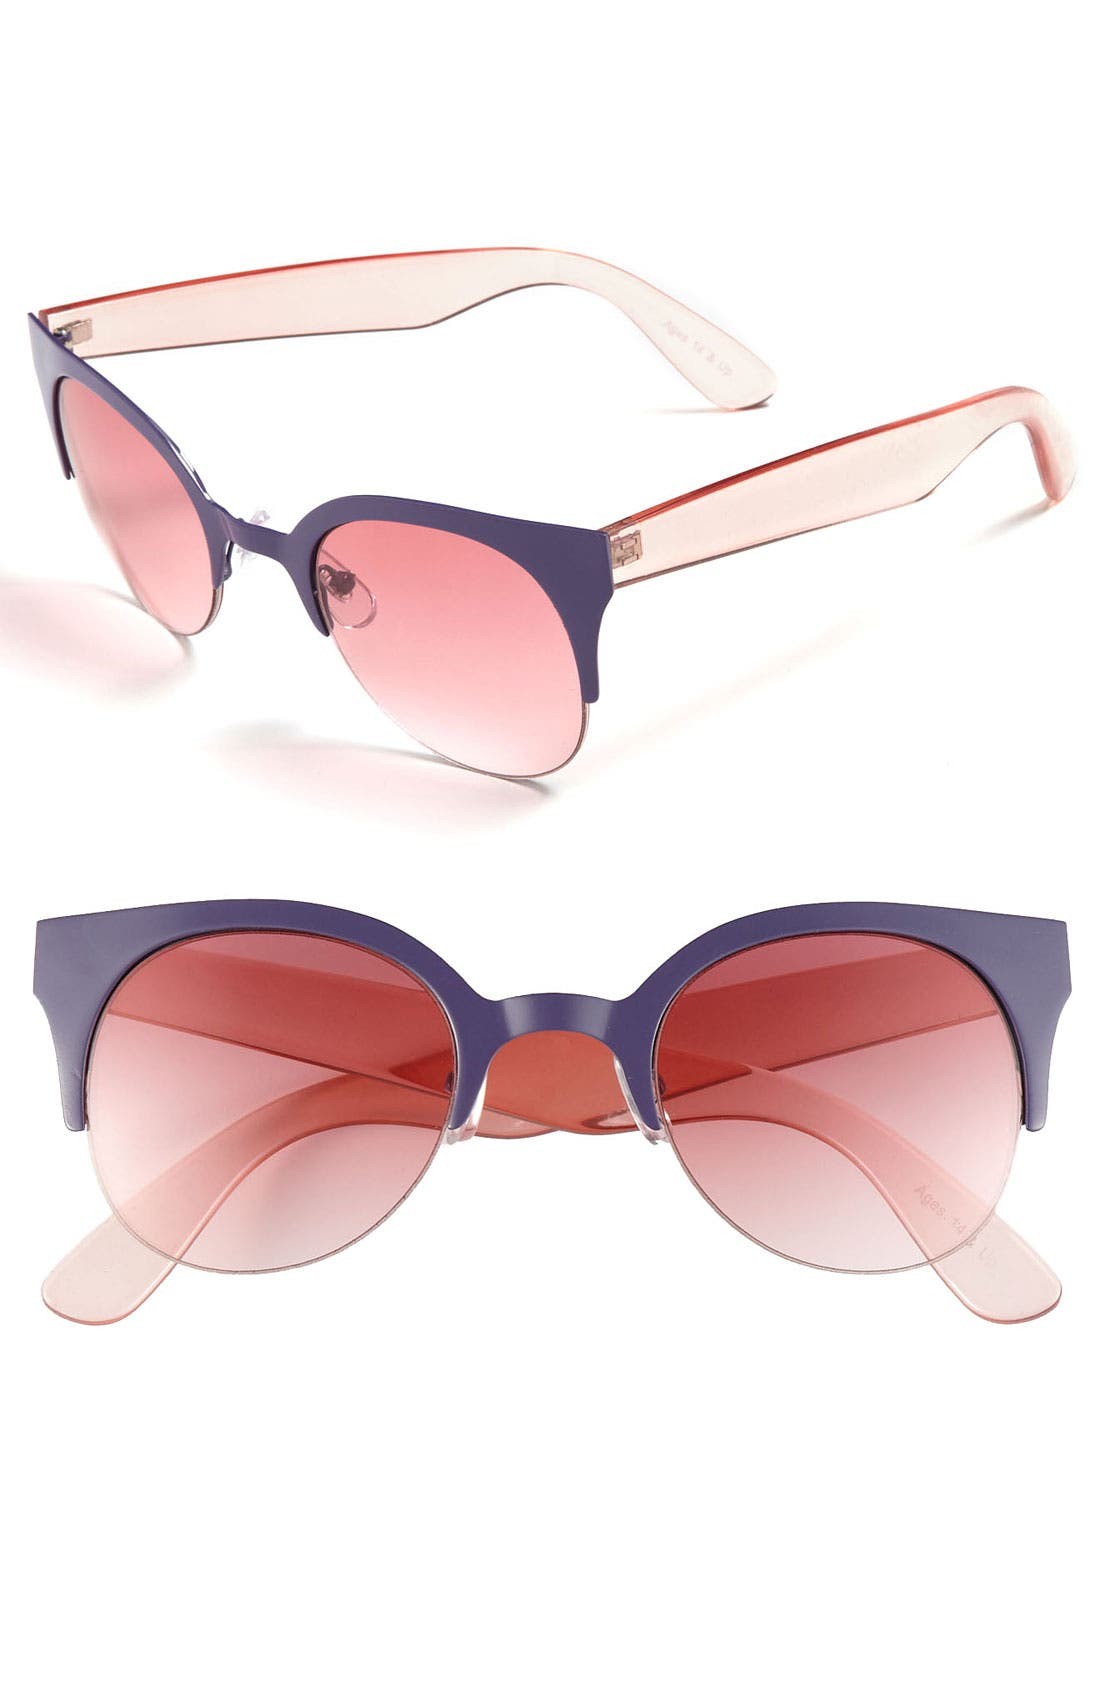 Alternate Image 1 Selected - FE NY 'Cool Cat' Sunglasses